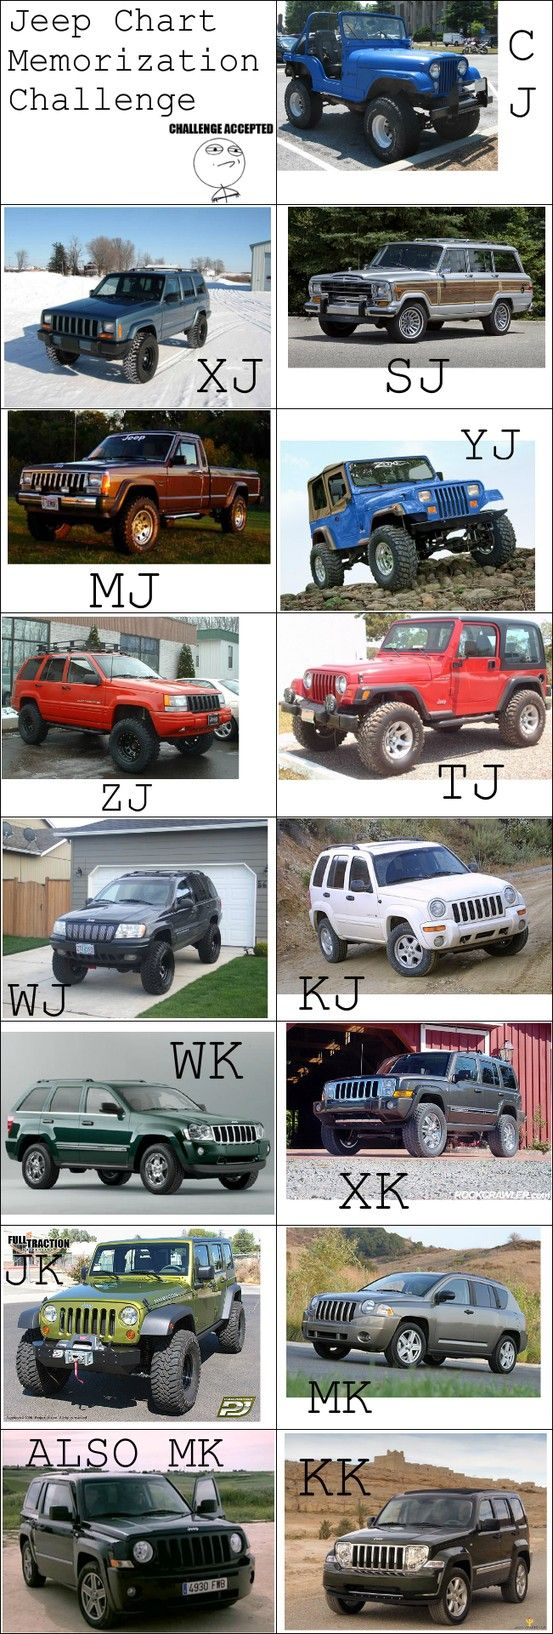 Jeep Wrangler Unlimited Comparison Chart : wrangler, unlimited, comparison, chart, Chart, Memorization, Challenge...Challenged, Accepted!, Jeep,, Offroad